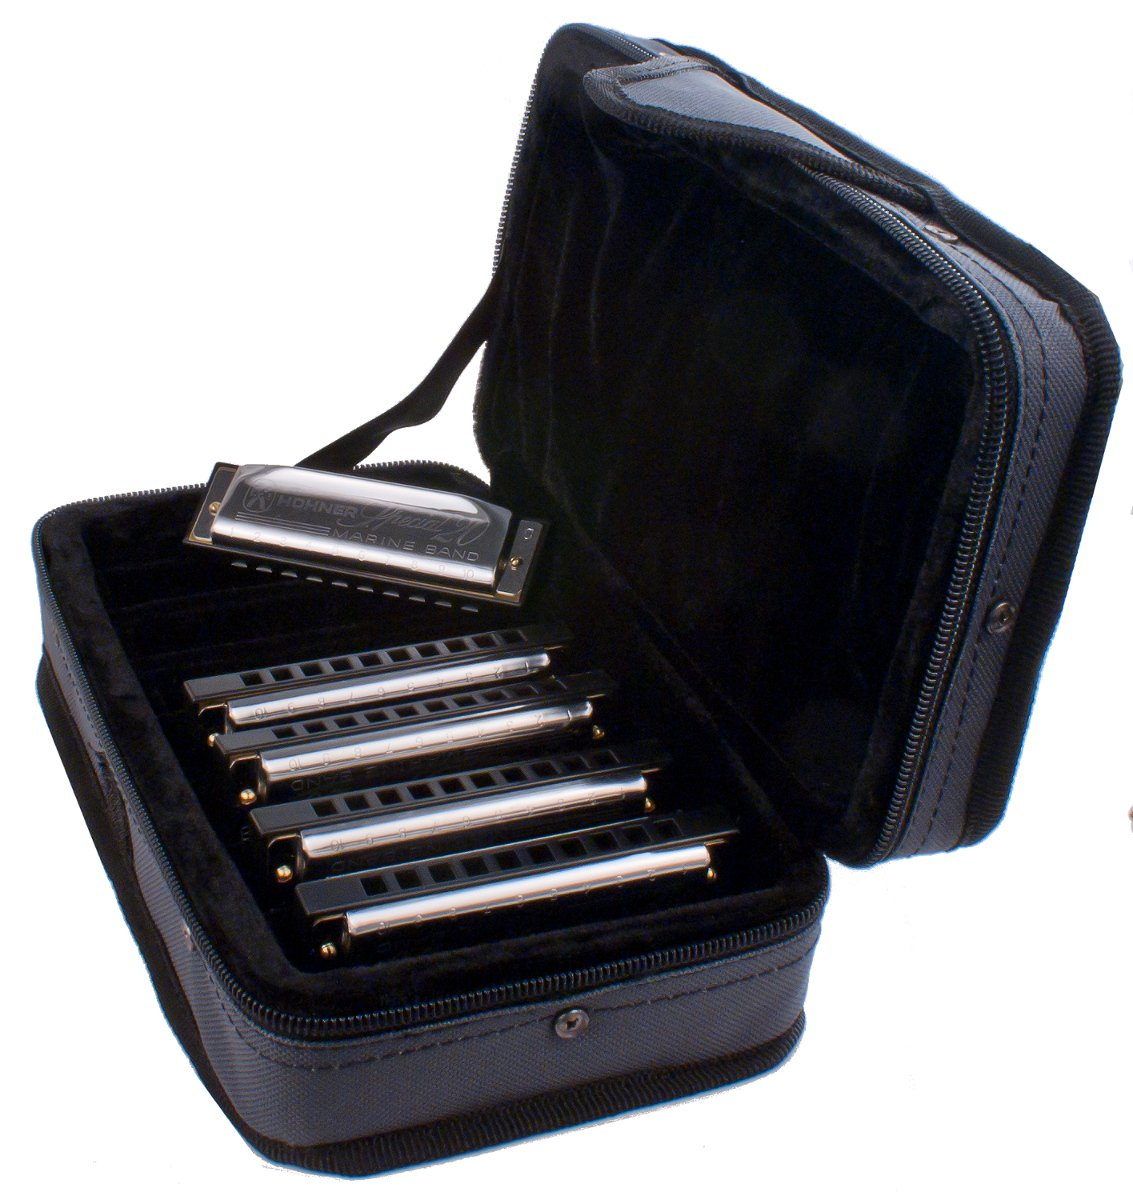 Special 20 Harmonica 5-pack with C-7 Case